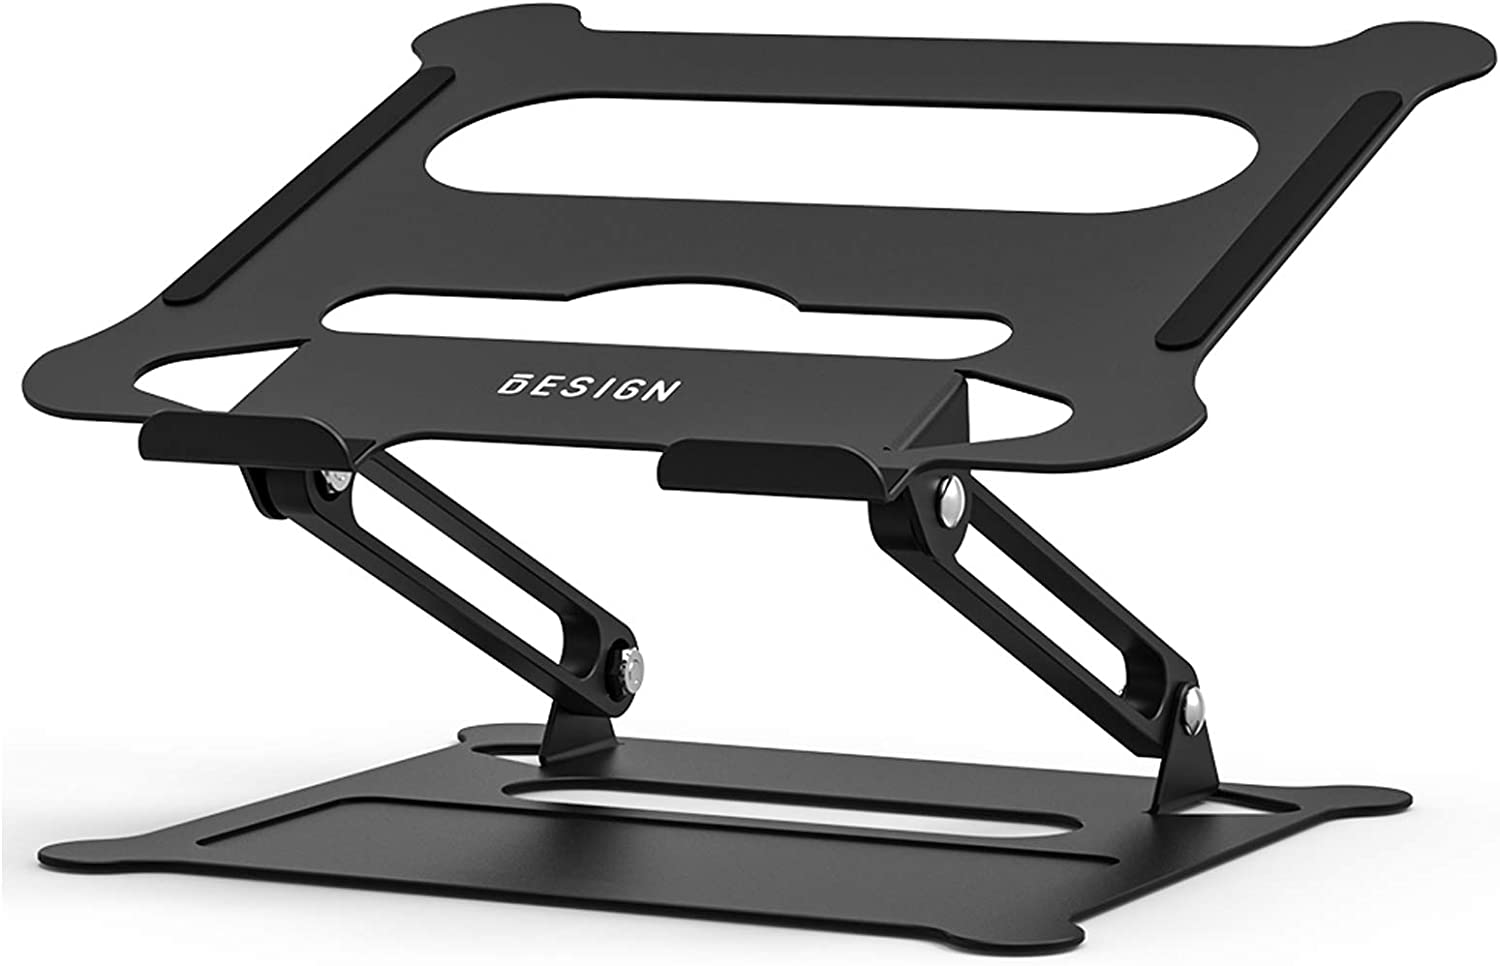 Besign LS05 Aluminum Laptop Stand, Ergonomic Adjustable Notebook Stand, Riser Holder Computer Stand Compatible with Air, Pro, Dell, HP, Lenovo More 10-15.6